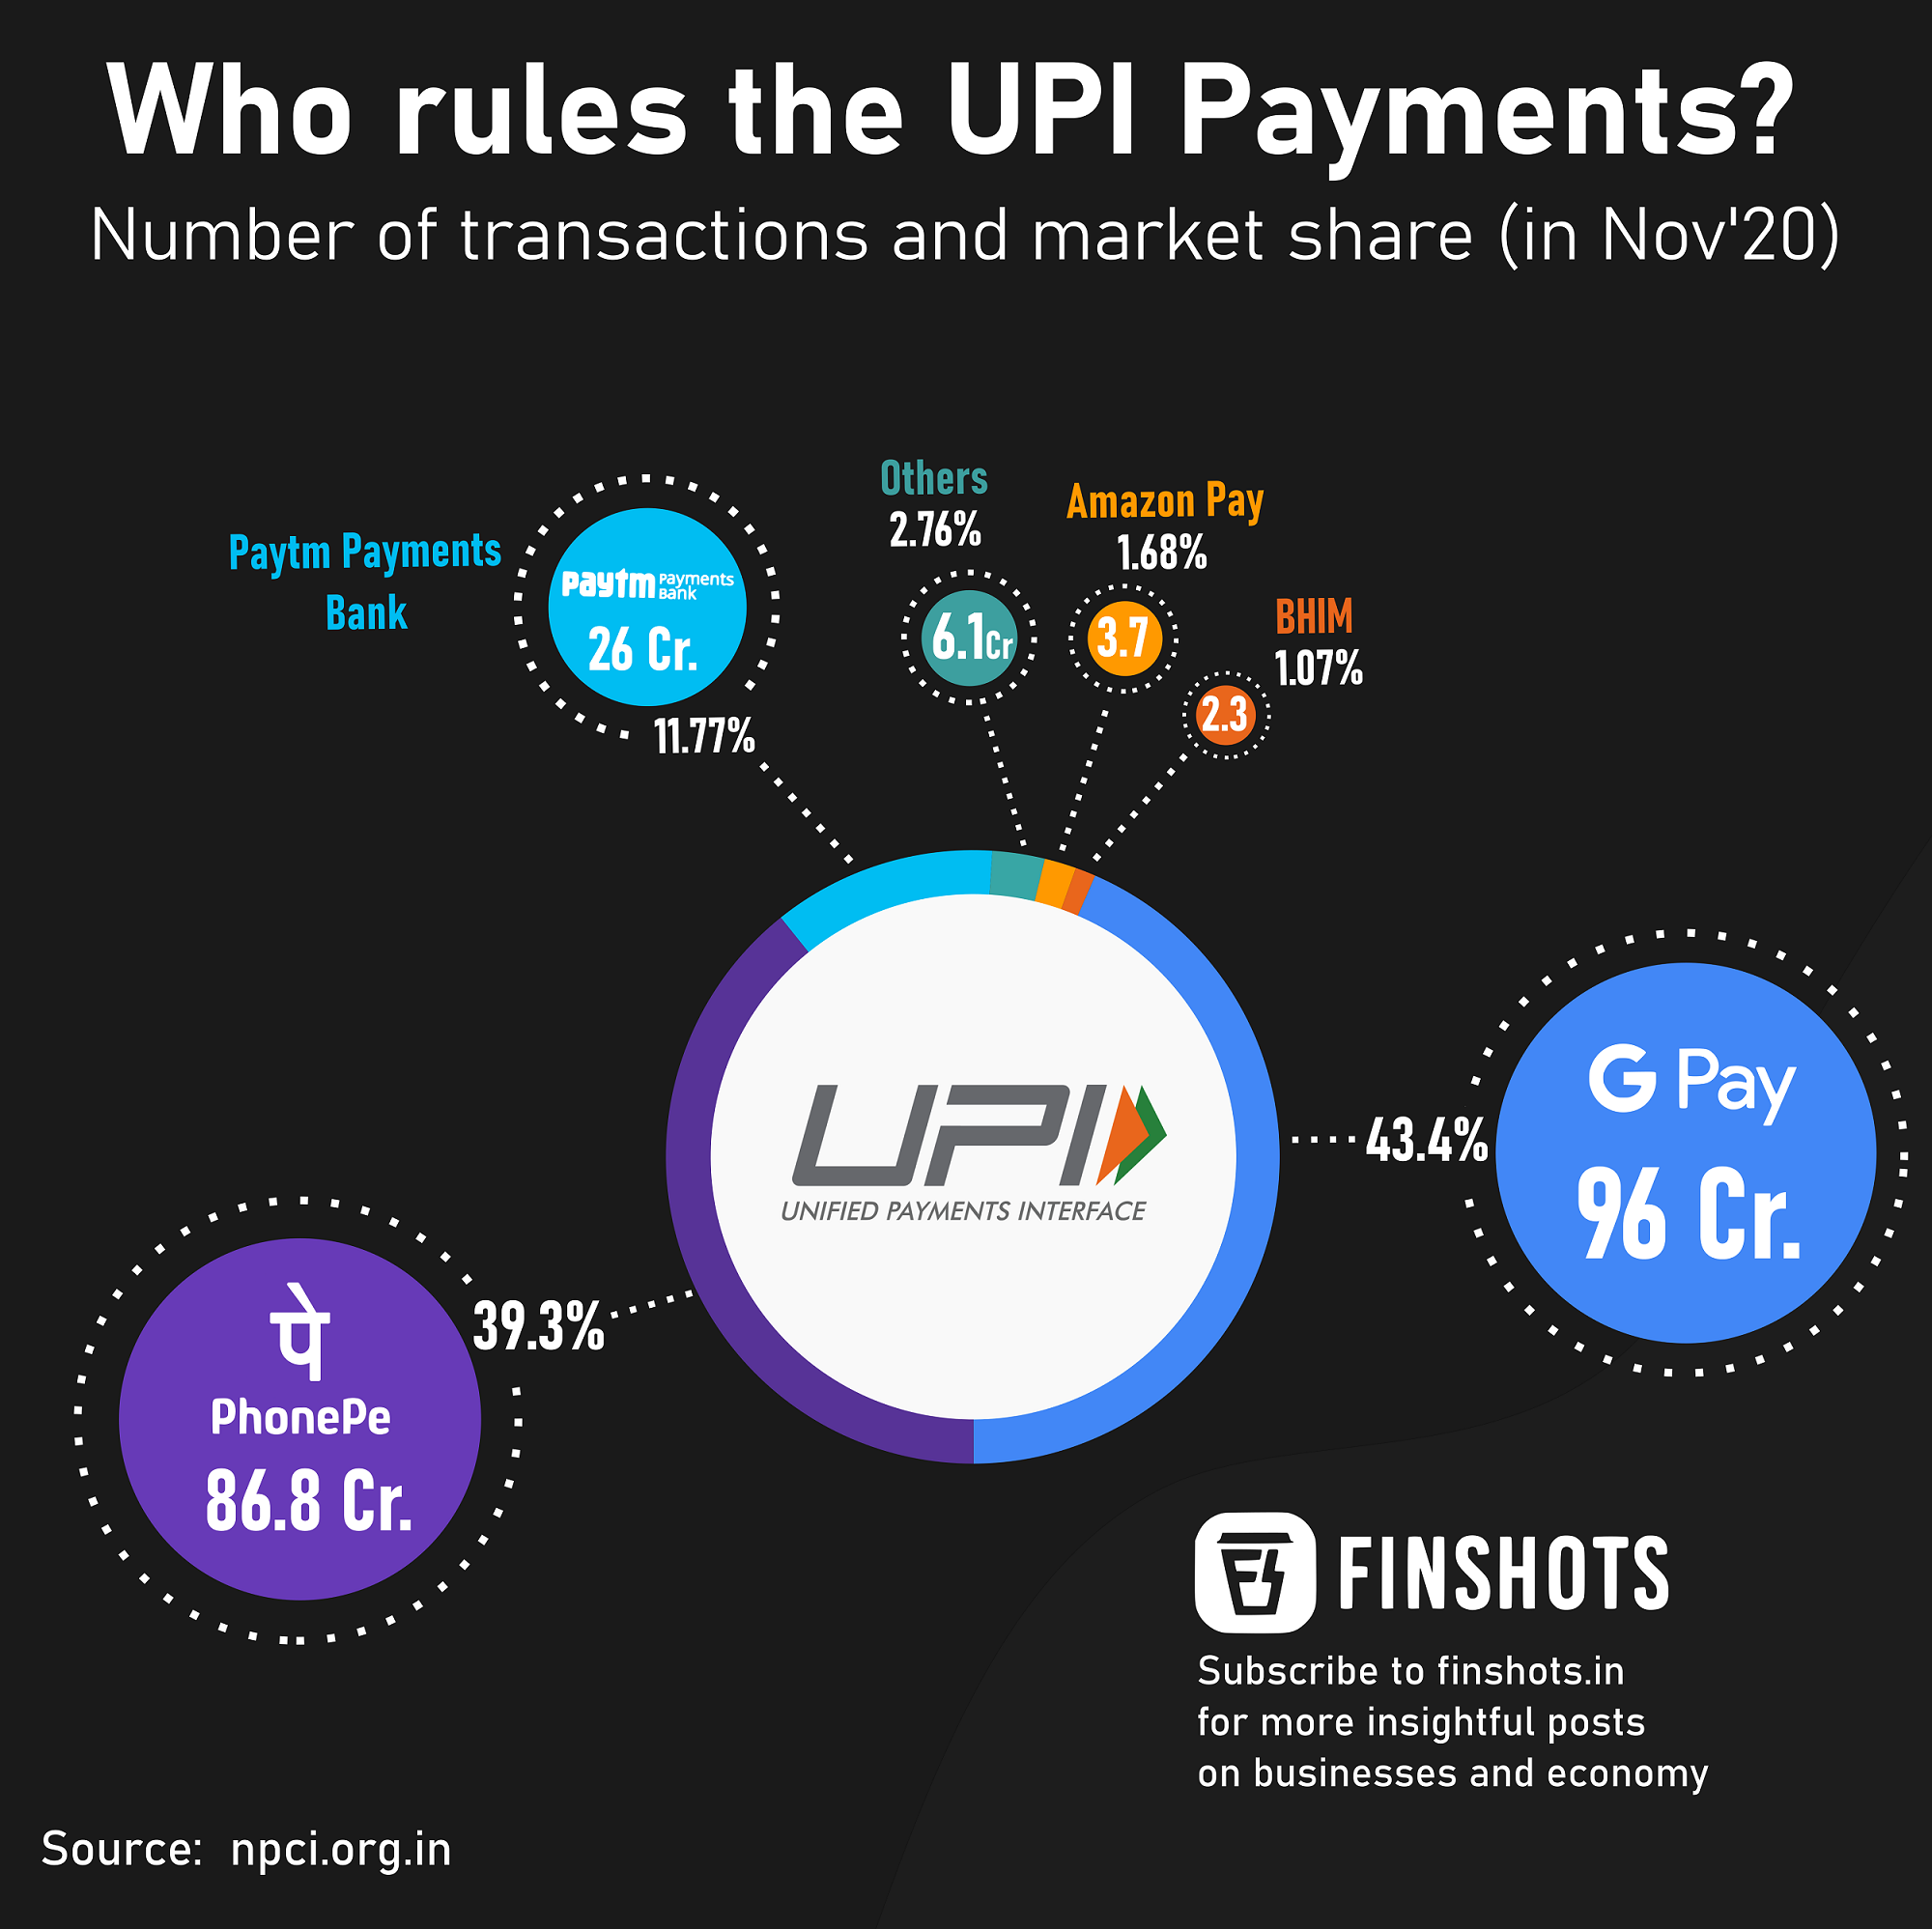 Who rules the UPI payments?